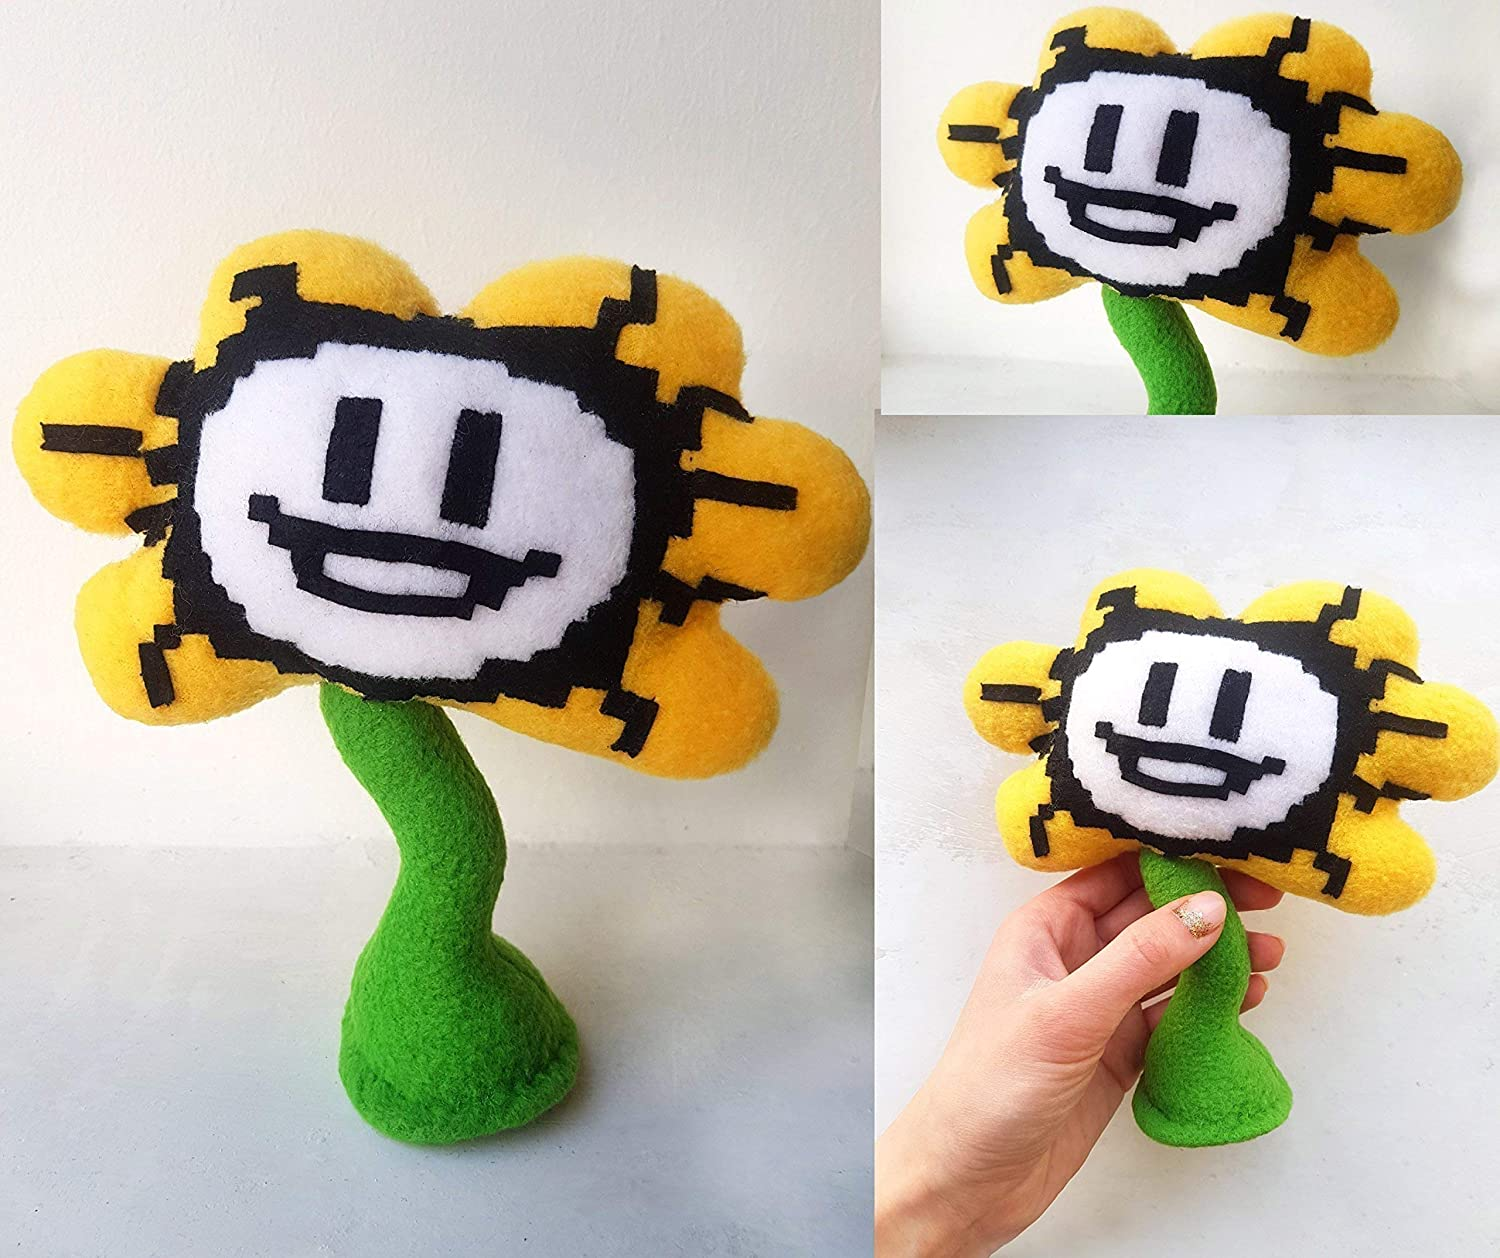 Undertale Flowey handmade plush, 7 in high